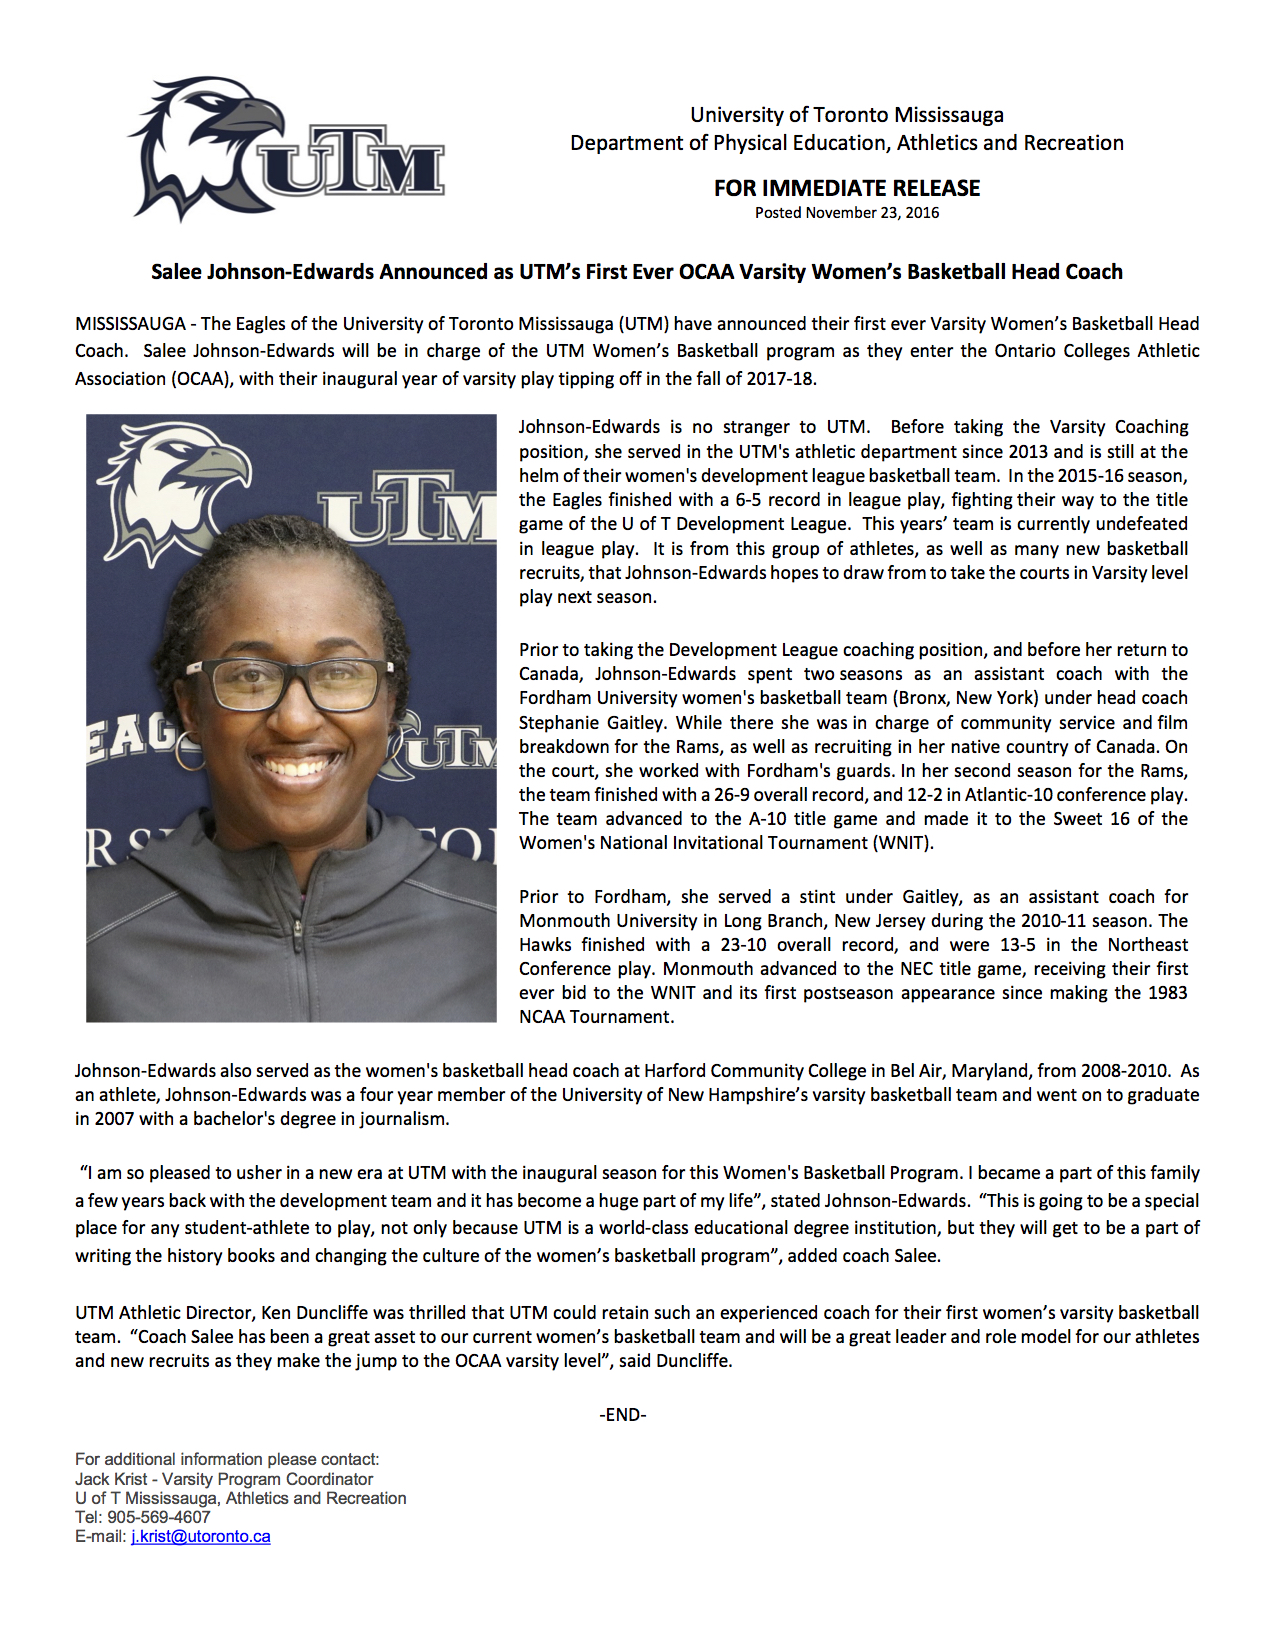 UTM Women's Basketball Press Release